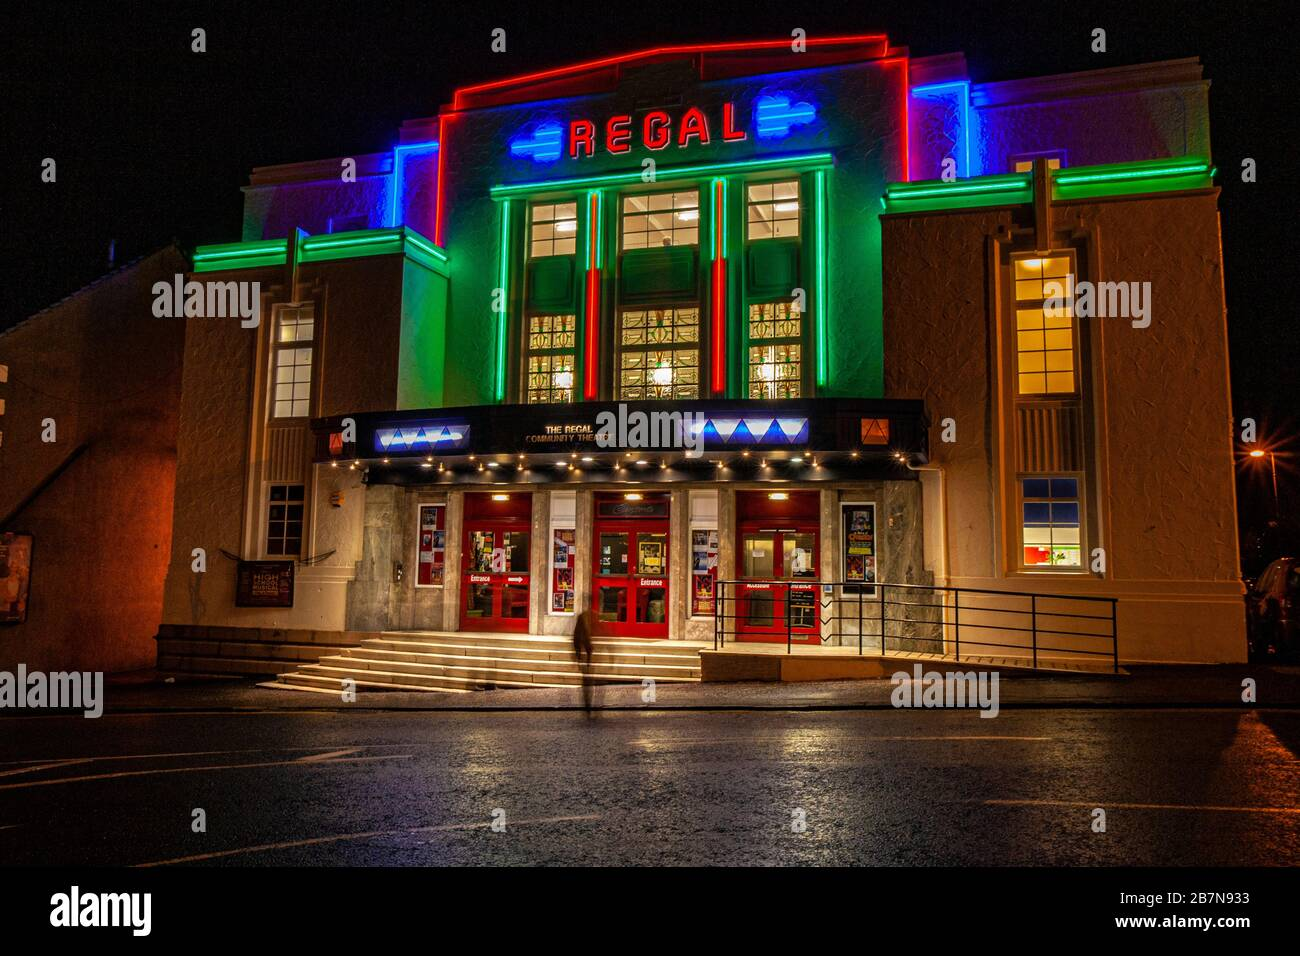 regal cinema high resolution stock photography and images alamy https www alamy com old cinemas never die they simply fade away the regal cinema bathgate west lothian scotland image348978087 html